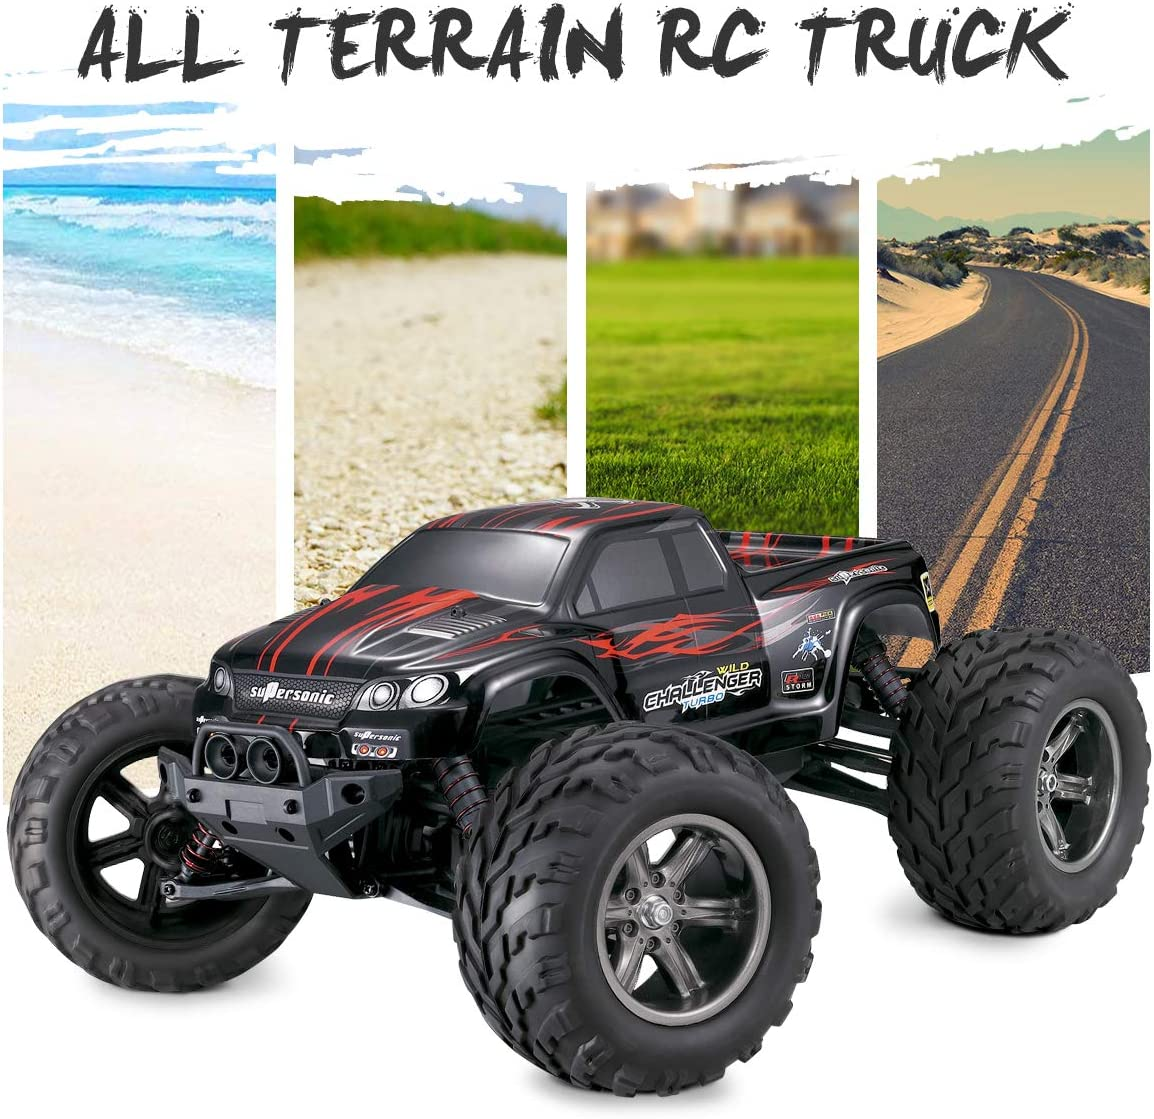 Top 10 Best RC Trucks You Should Consider Buying (2020 Reviews) 6